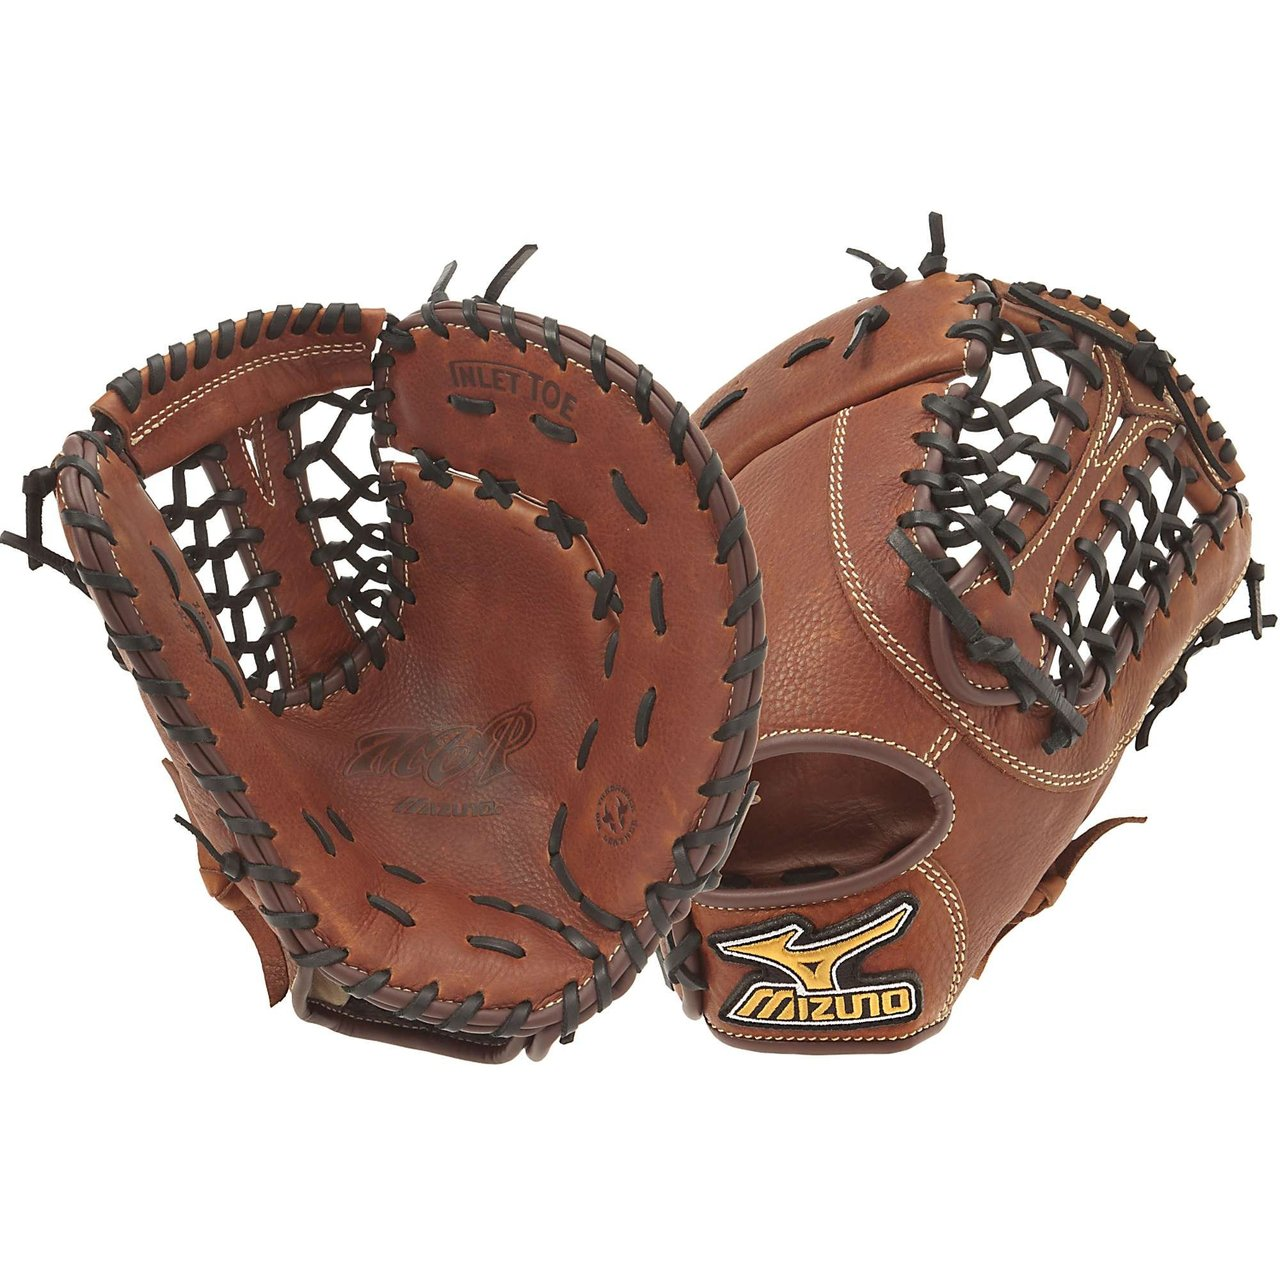 The Mizuno GXF57 is a 13.00-Inch Pro sized first basemen's mitt made from soft Bio Throwback leather and is game ready right away.